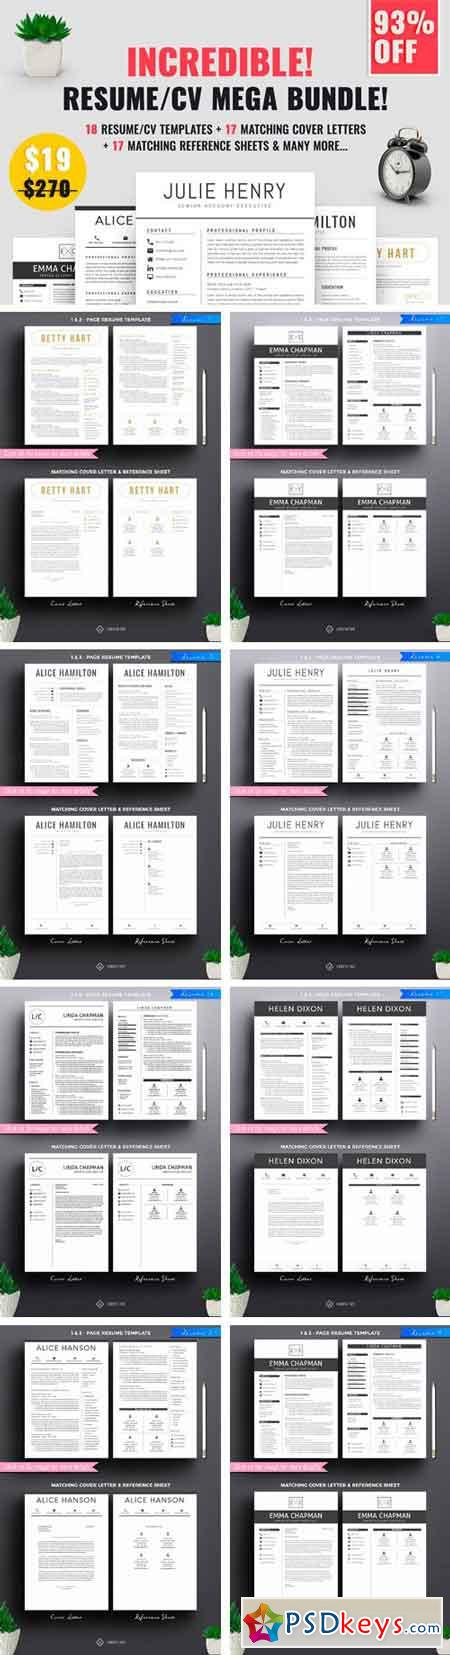 Resume CV Mega Bundle 1740422